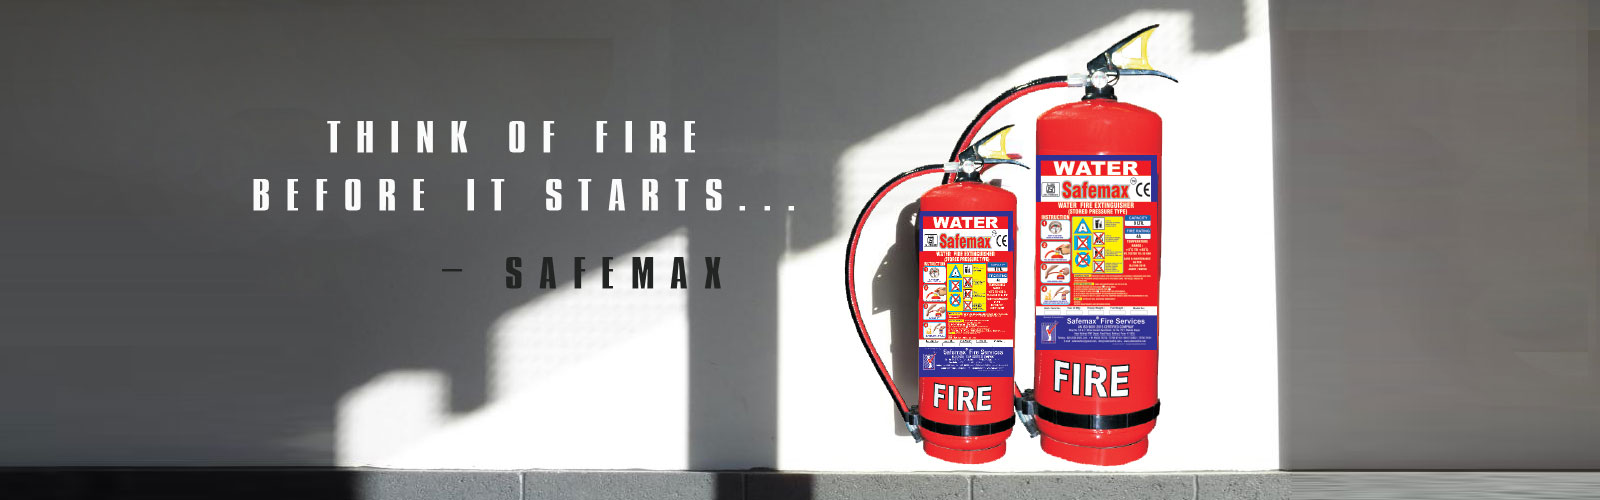 Safemax Fire Services